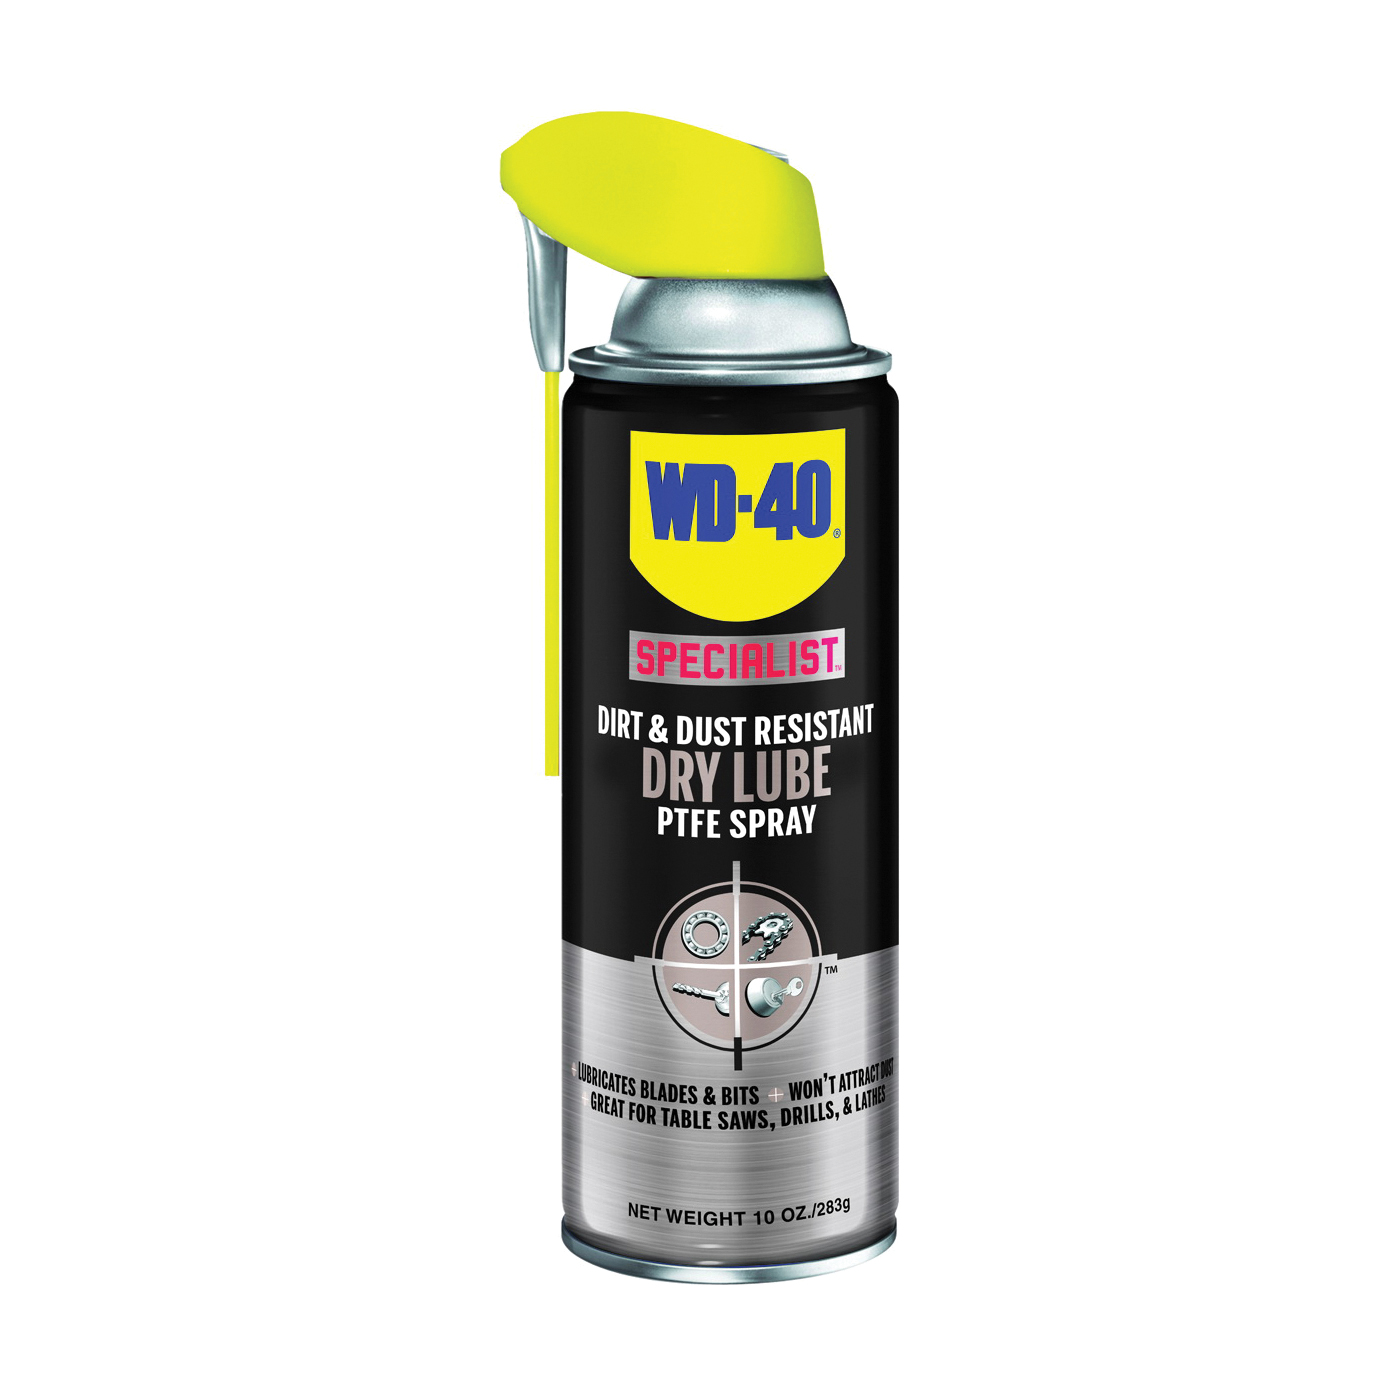 Picture of WD-40 300059 Lubricant, 10 oz Package, Can, Liquid, Pleasant